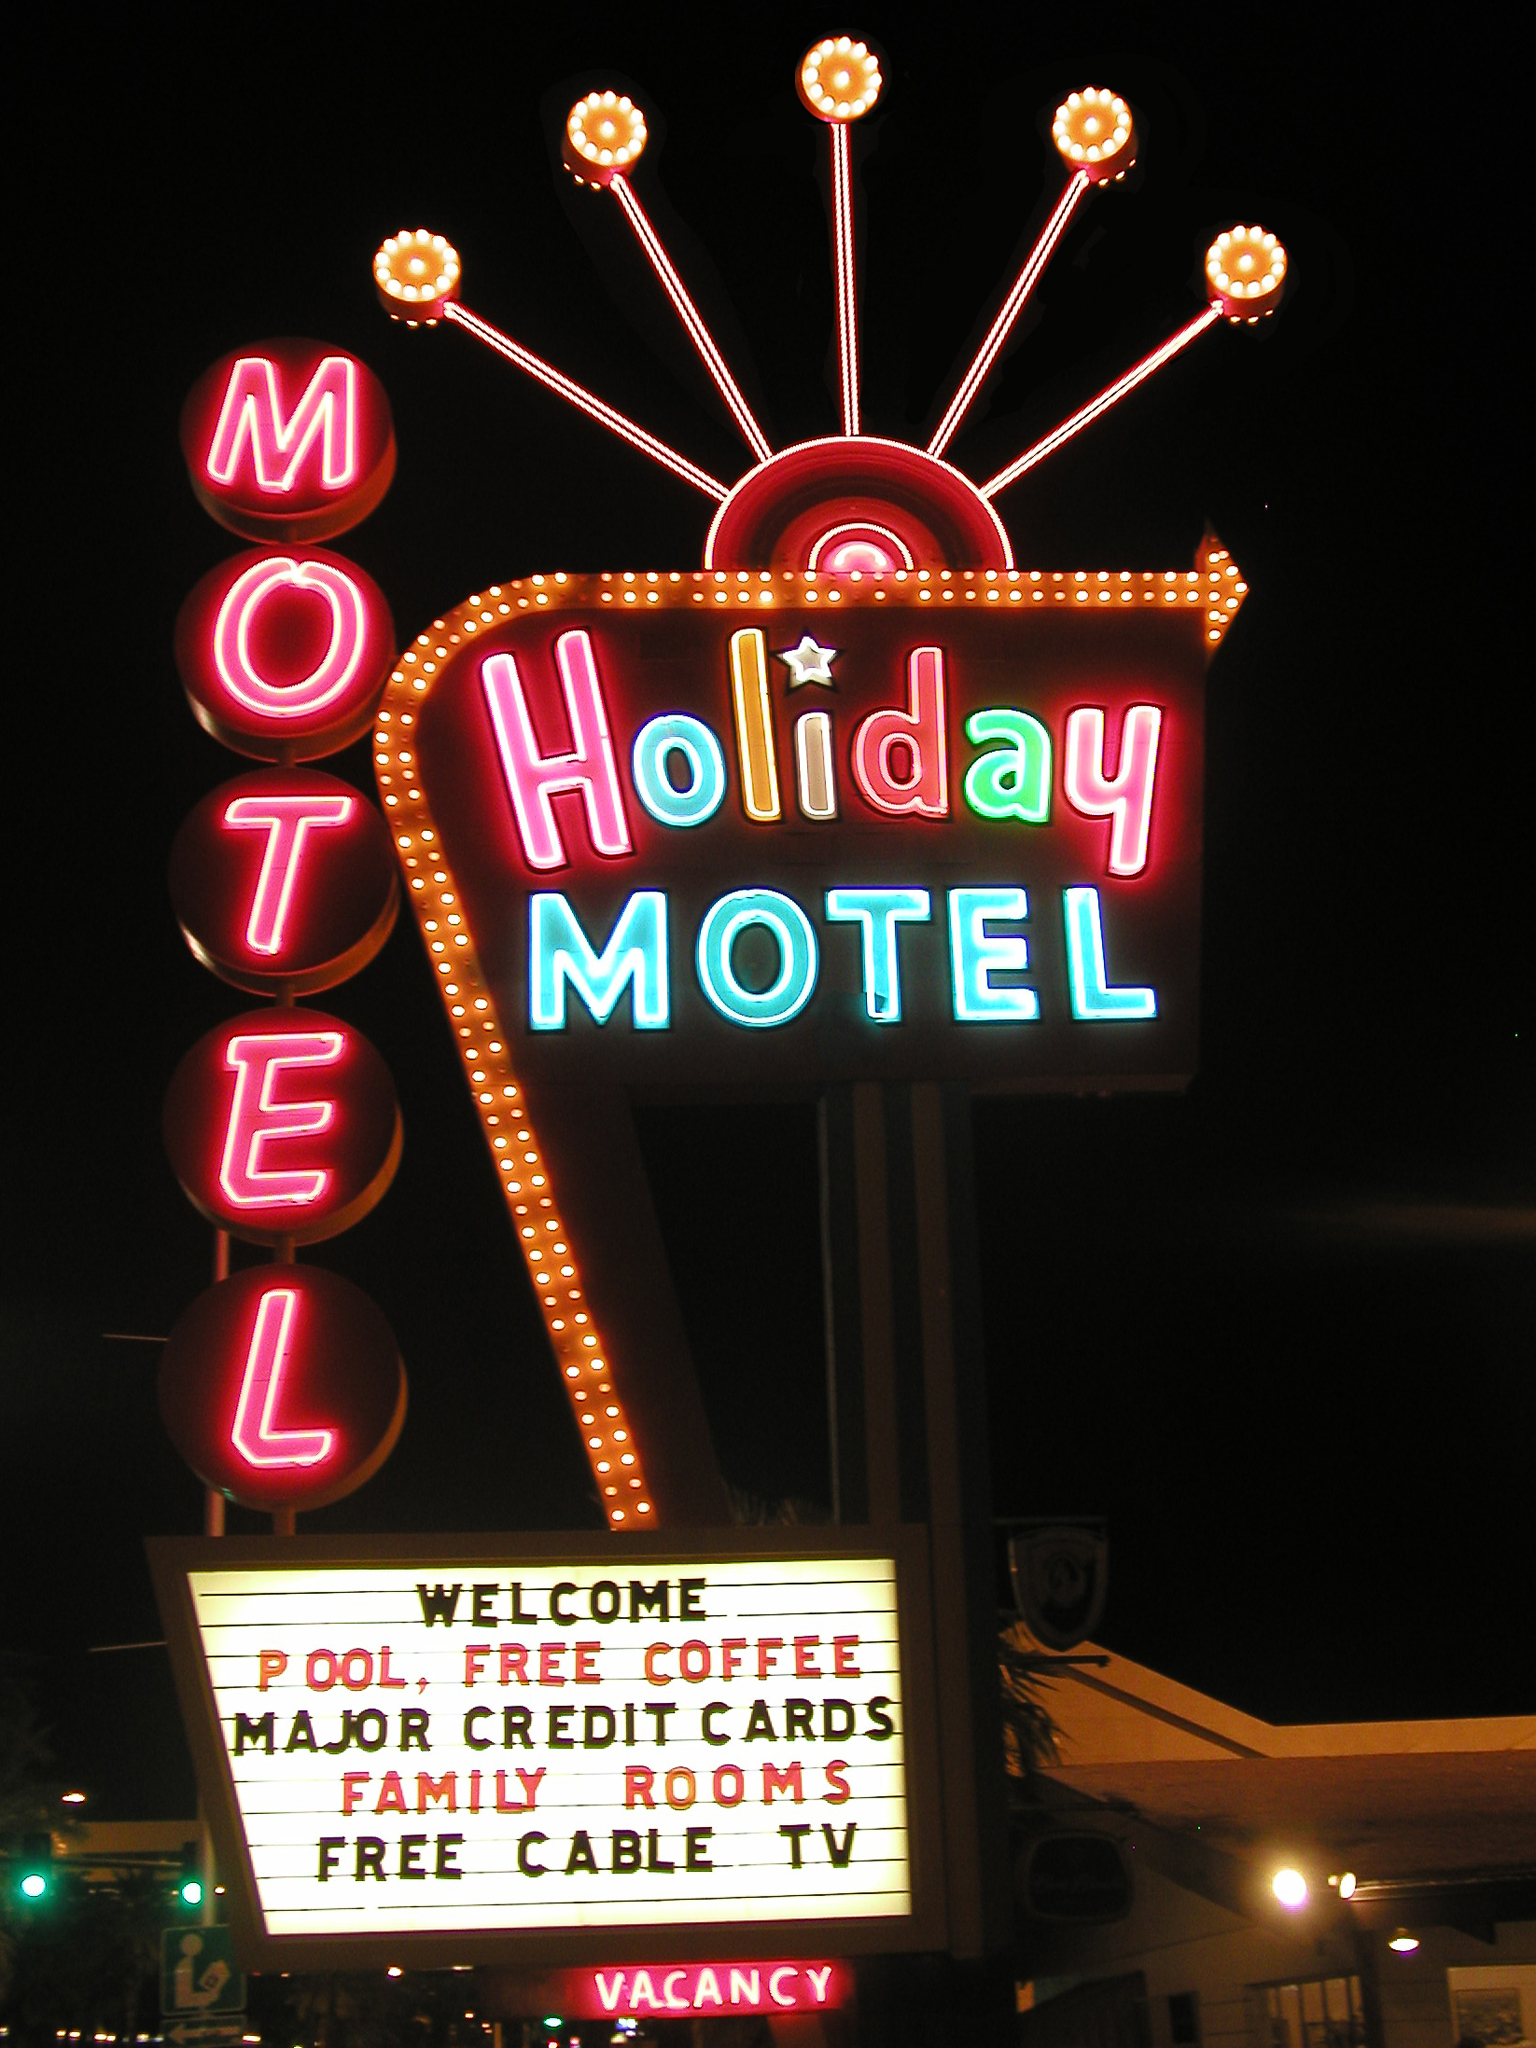 Photo #76126: Historic Holiday Motel | America's Byways